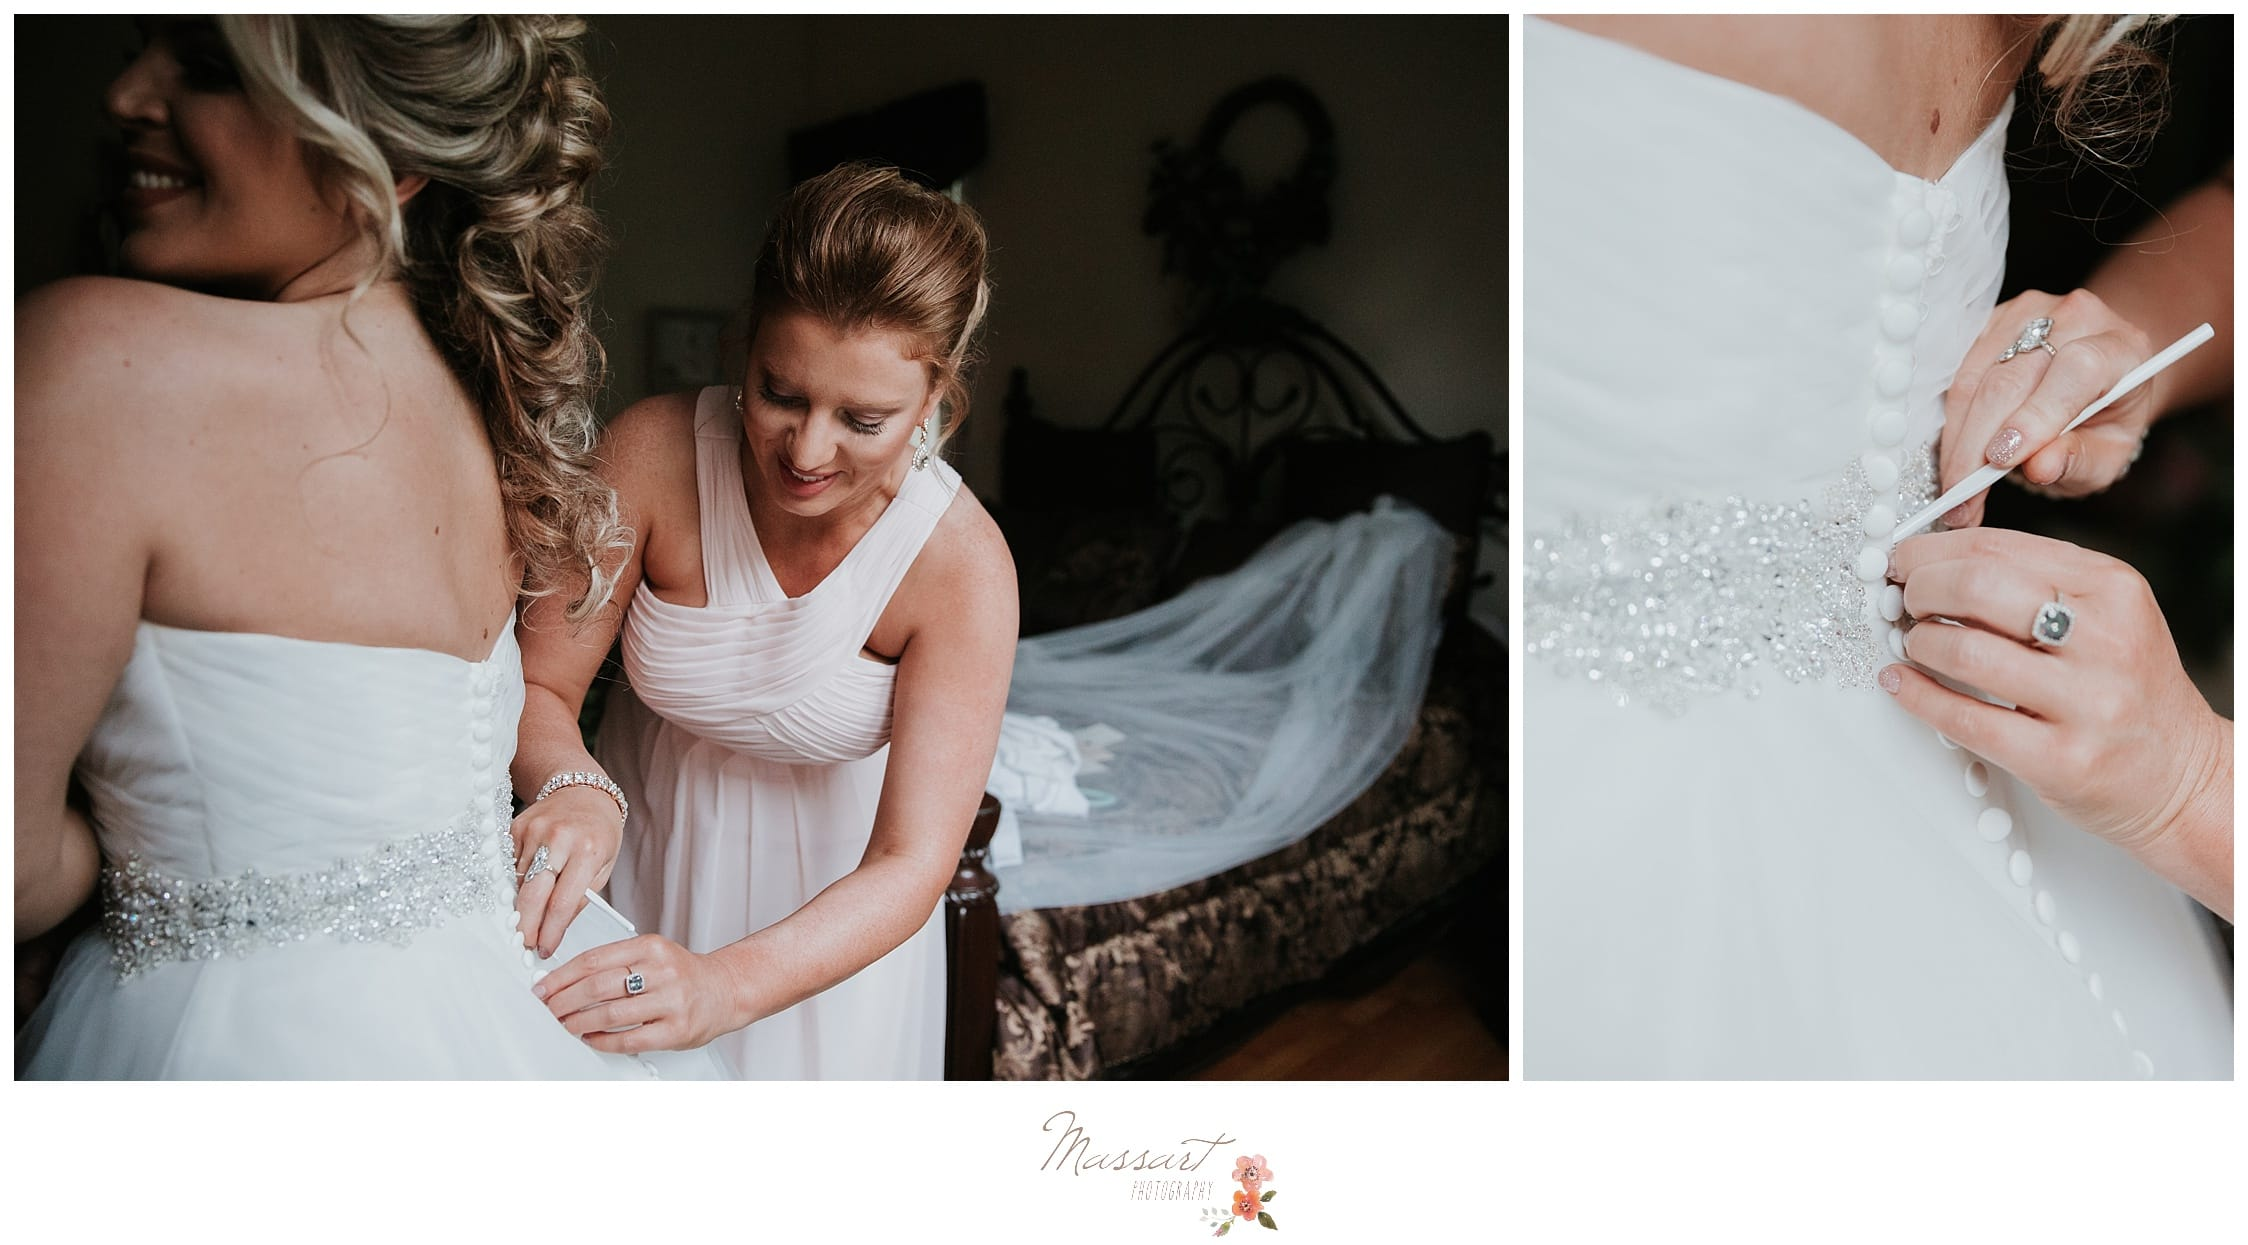 Maid of honor ties up the bride's wedding gown before the Providence, RI wedding photographed by Massart Photography Rhode Island